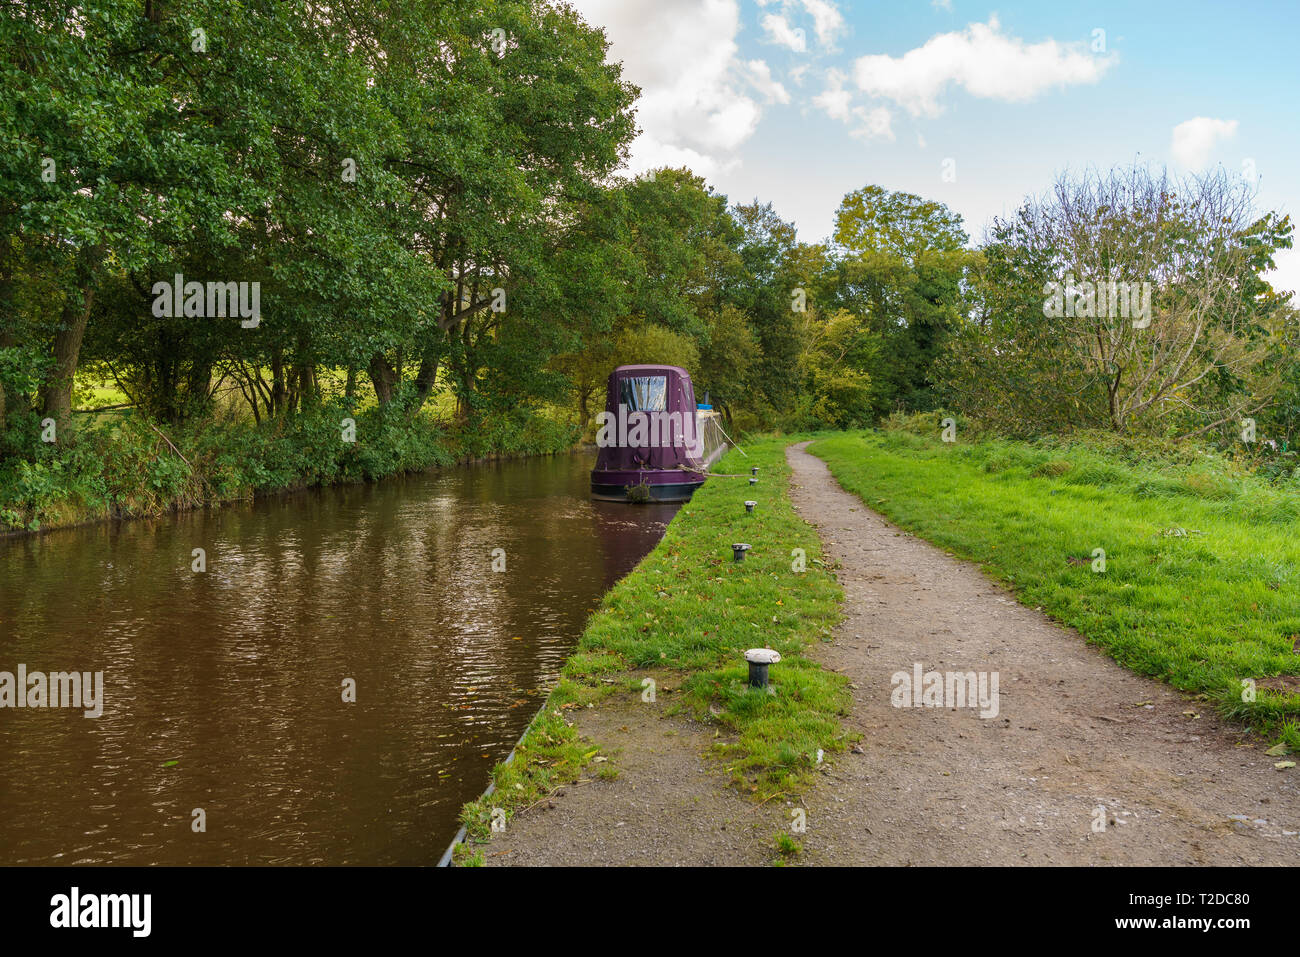 The Monmouthshire & Brecon Canal with a narrowboat, seen in Talybont on Usk, Powys, Wales, UK - Stock Image